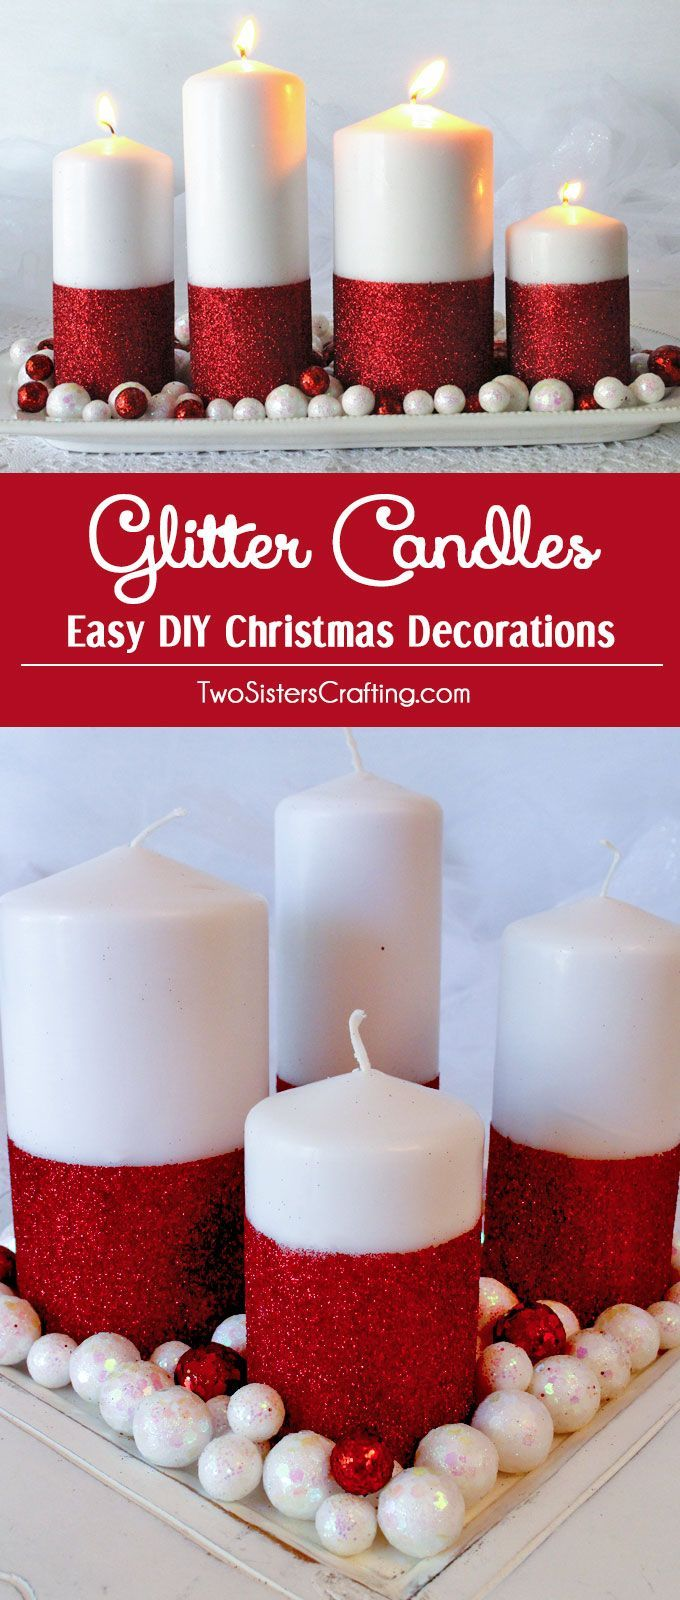 Glitter candles easy diy christmas decorations diy christmas glitter candles easy diy christmas decorations we show you how to turn candles from plain to spectacular in this fun and easy christmas craft project solutioingenieria Gallery